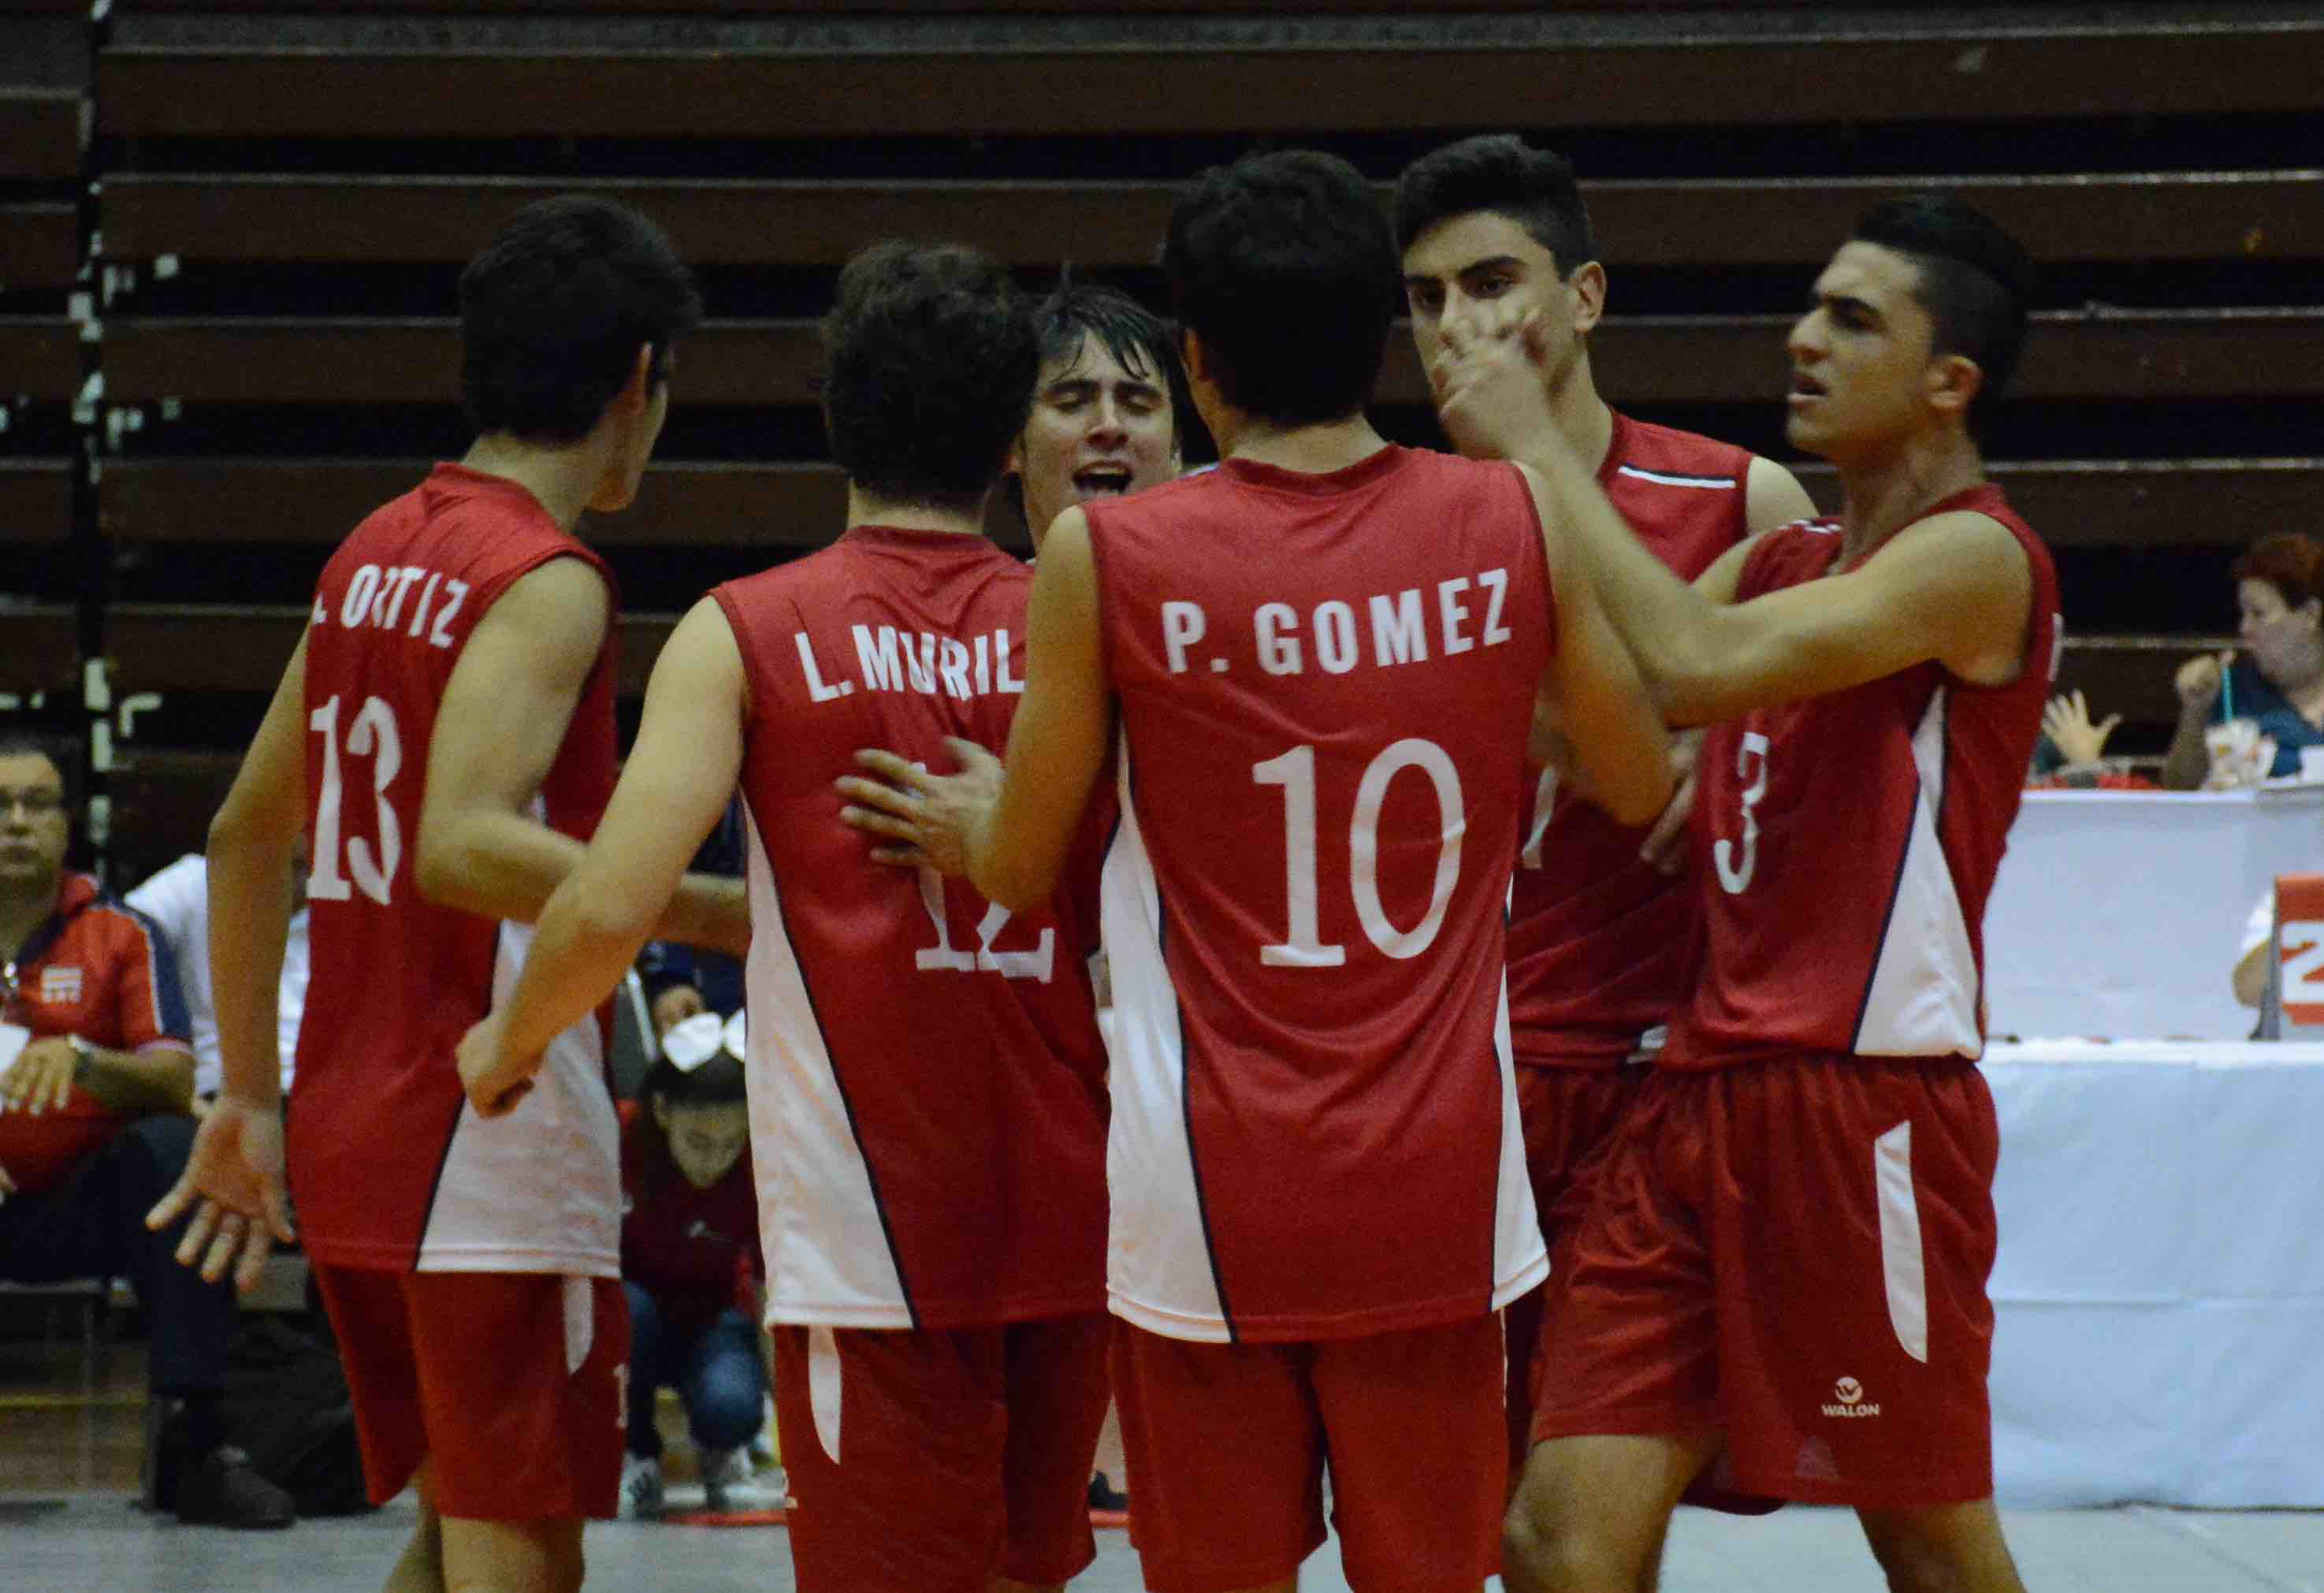 Hernandez Dominican Republic Volleyball >> News - Chile improve to 2-0 at U19 Pan Am Cup